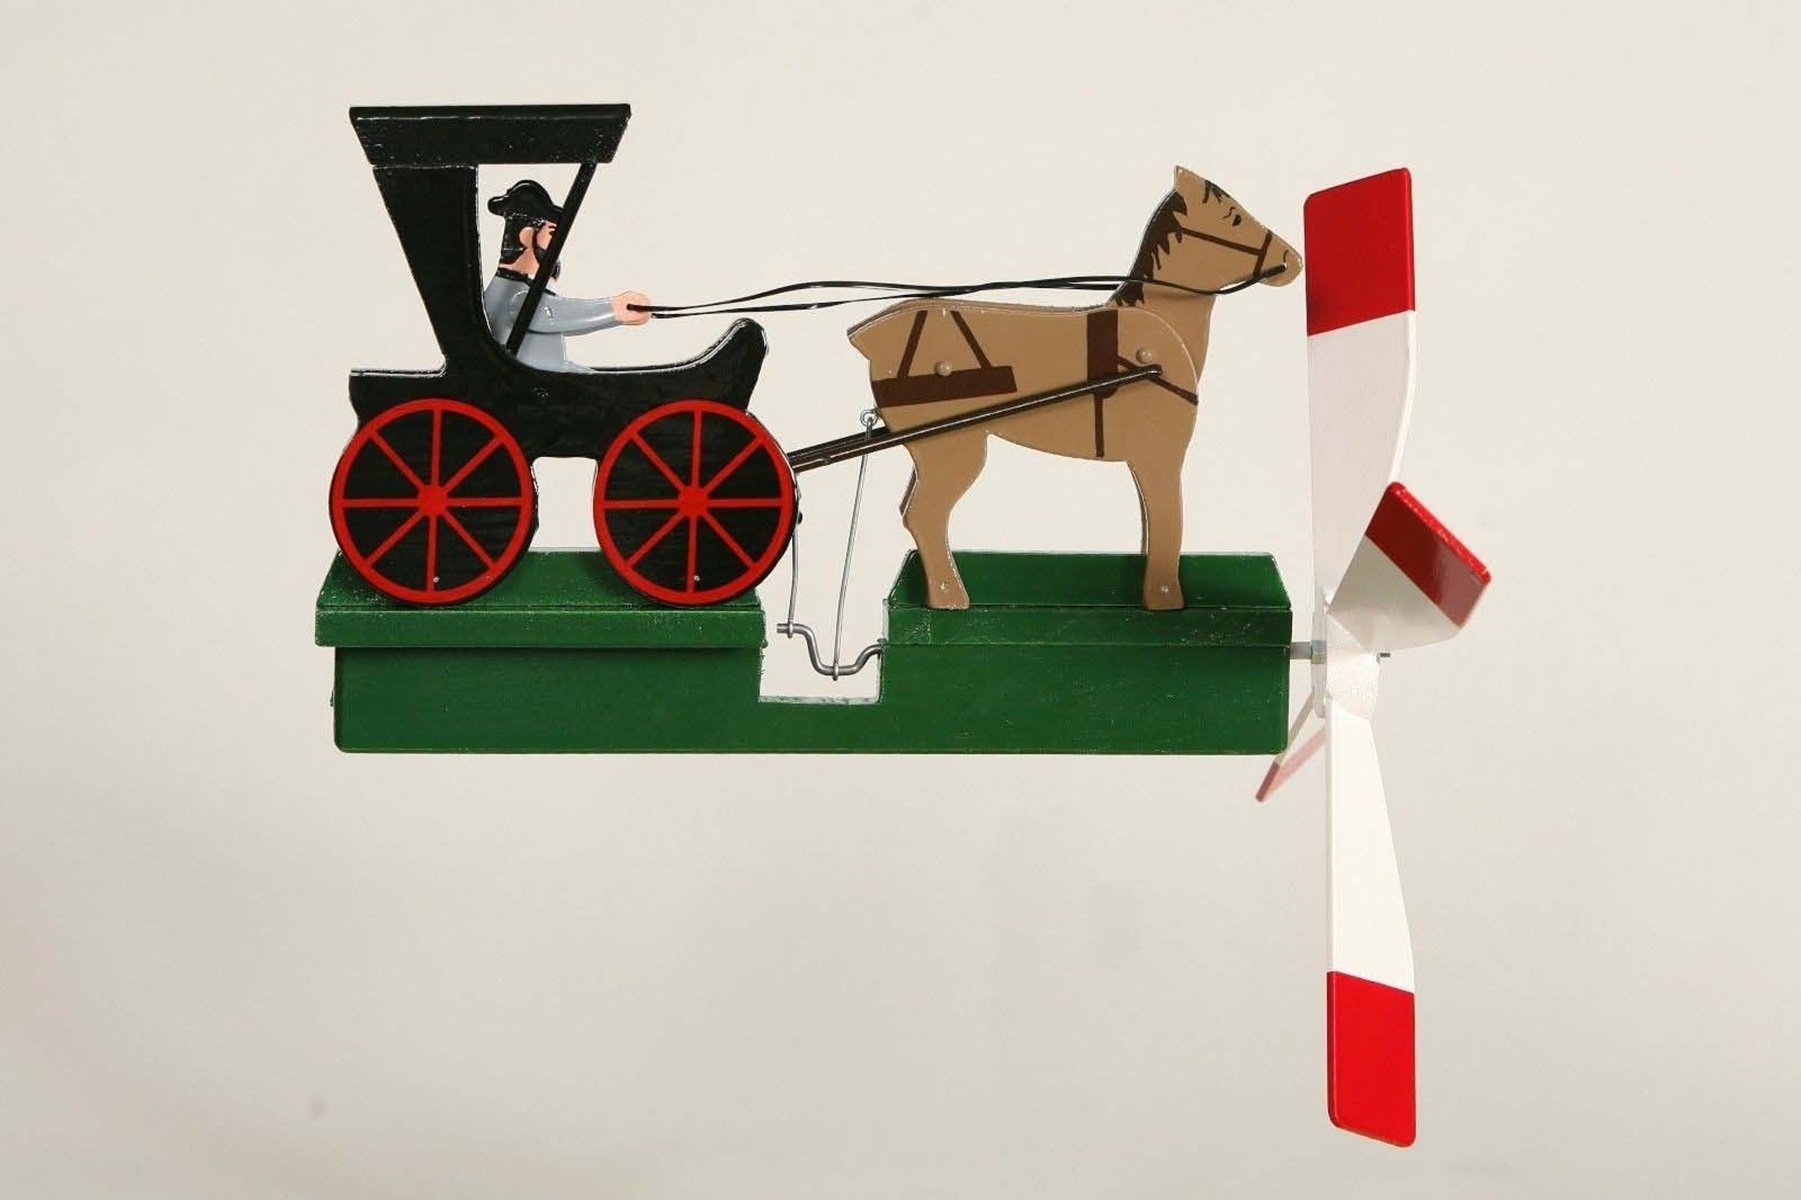 CHSGJY Handcrafted Antique Garden Amish Horse and Buggy Whirligig - Handmade Handpainted Wood Wind Spinner Outdoor Art Yard Stake Hand Home Living Decor by CHSGJY